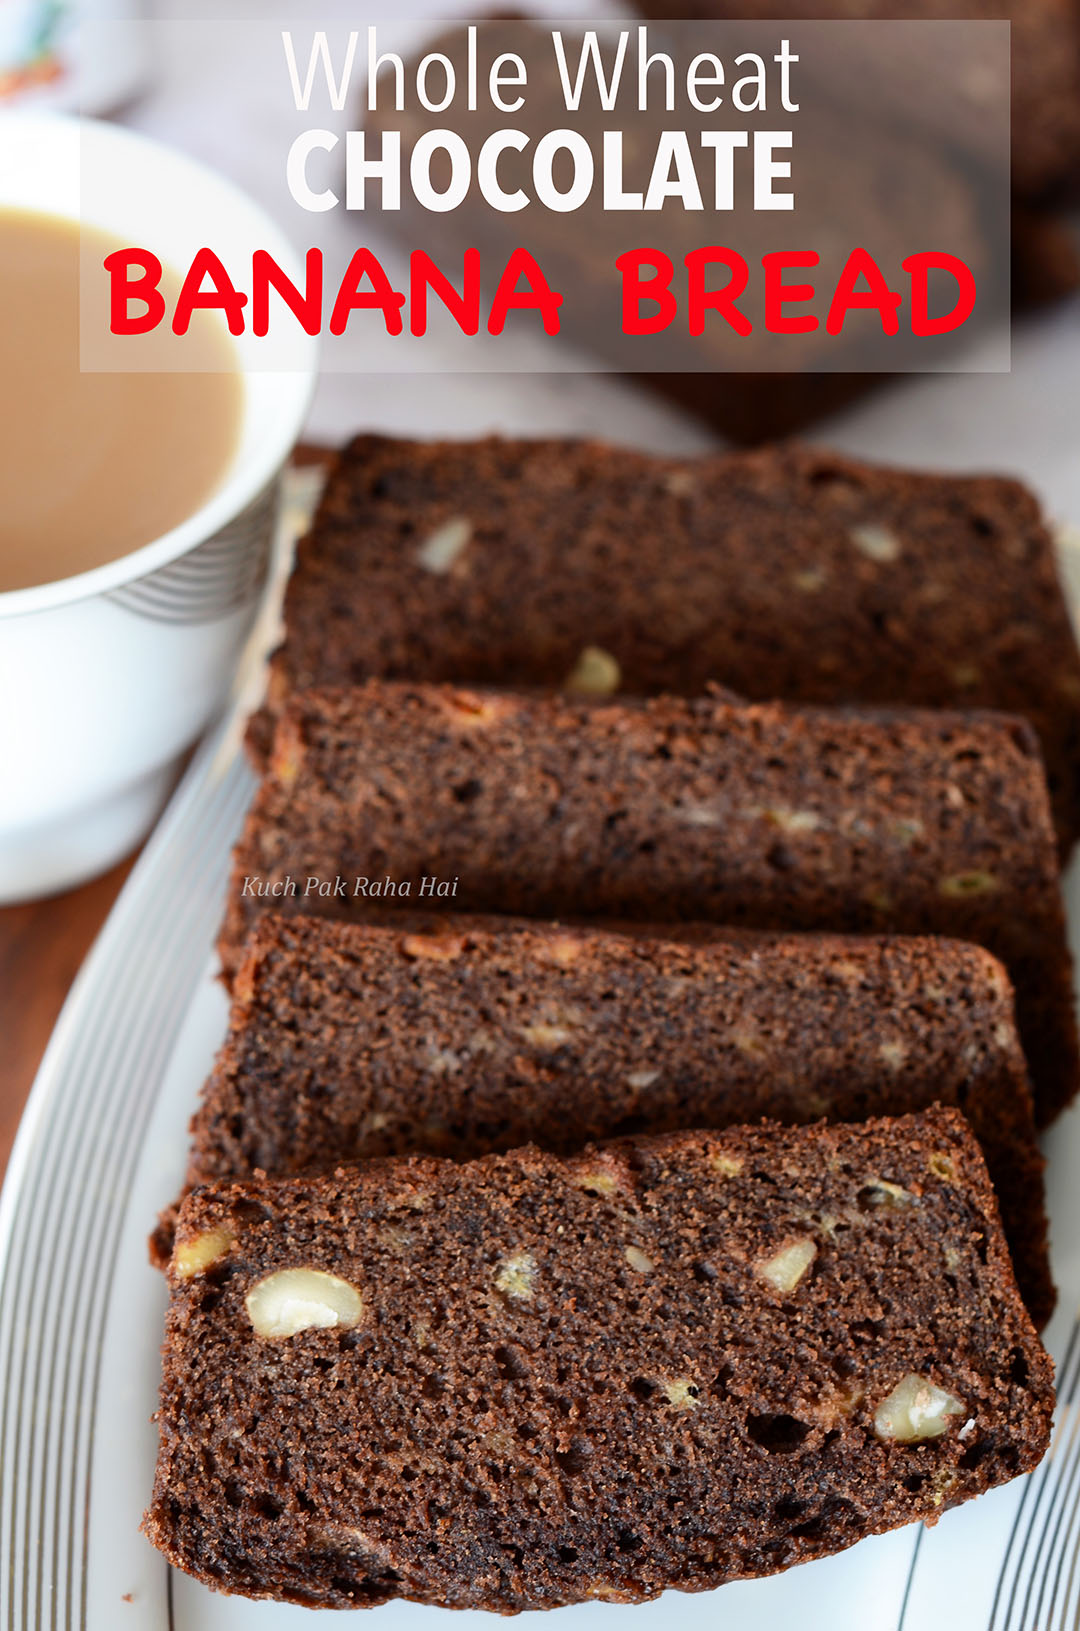 Eggless Banana Bread Vegan Whole Wheat in Chocolate Flavour